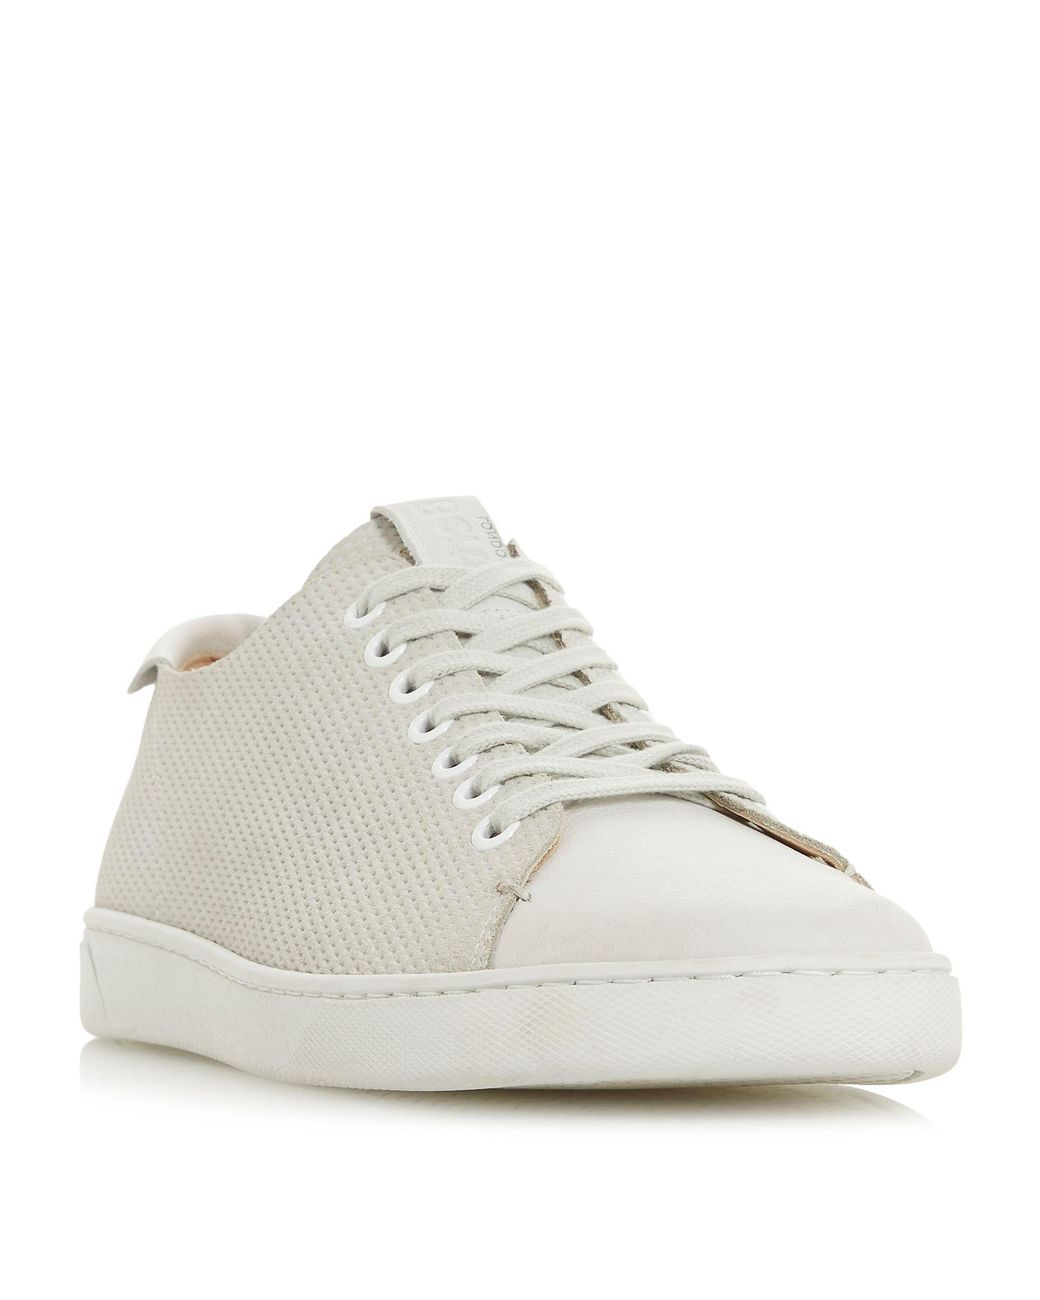 5622a5d85 Bertie Off White 'tristian Ii' Perforated Upper Lace-up Trainers in ...